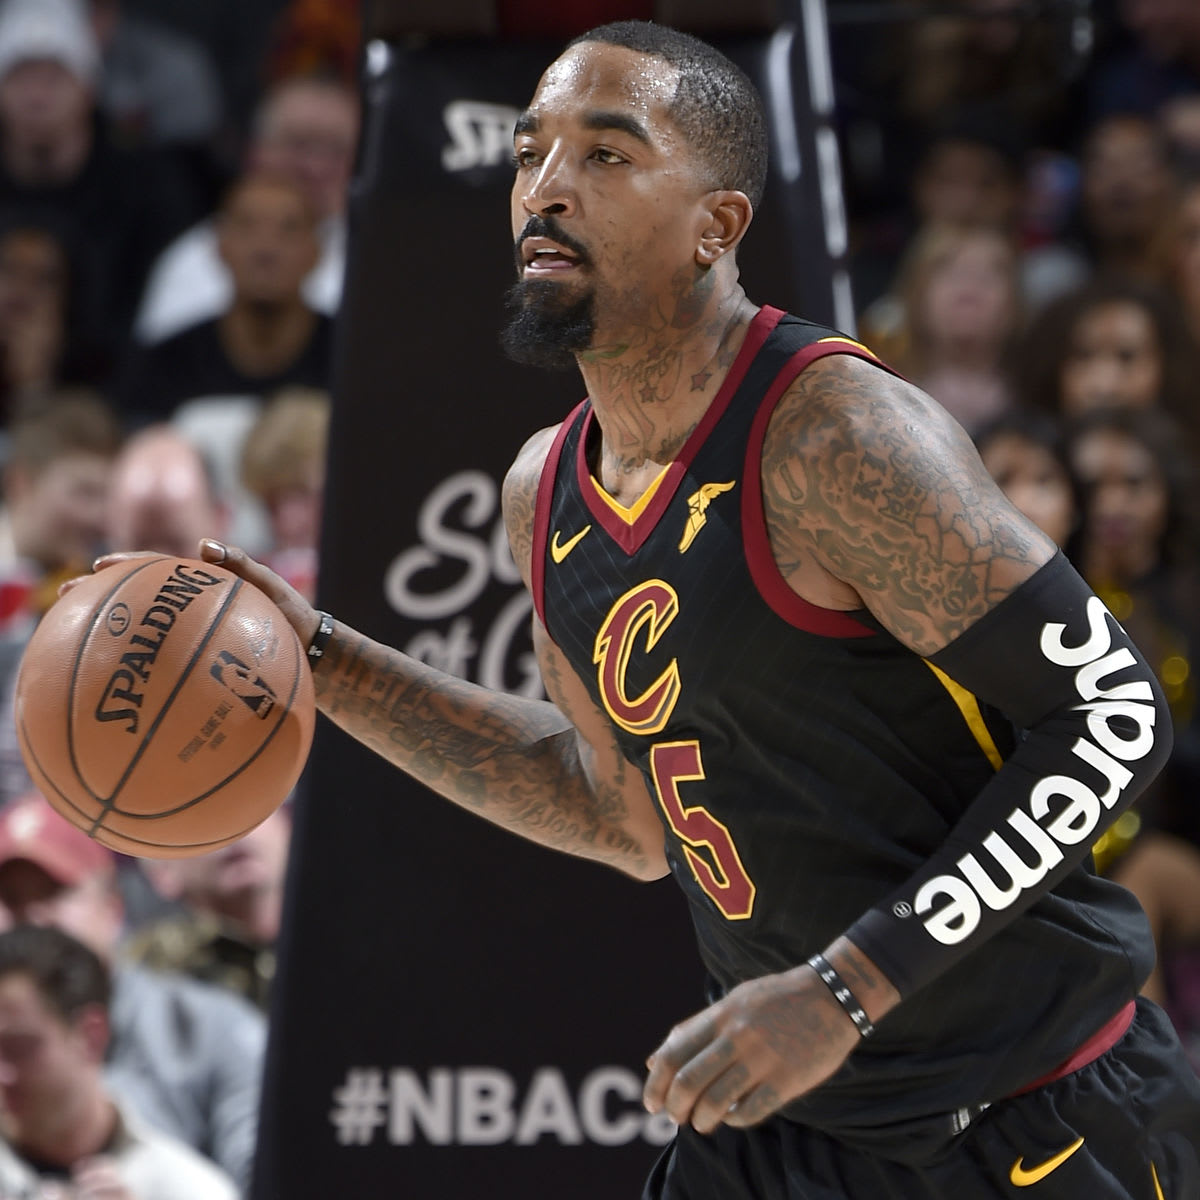 J.R. Smith Wears the Black Supreme x NBA Shooting Sleeve Against Lakers